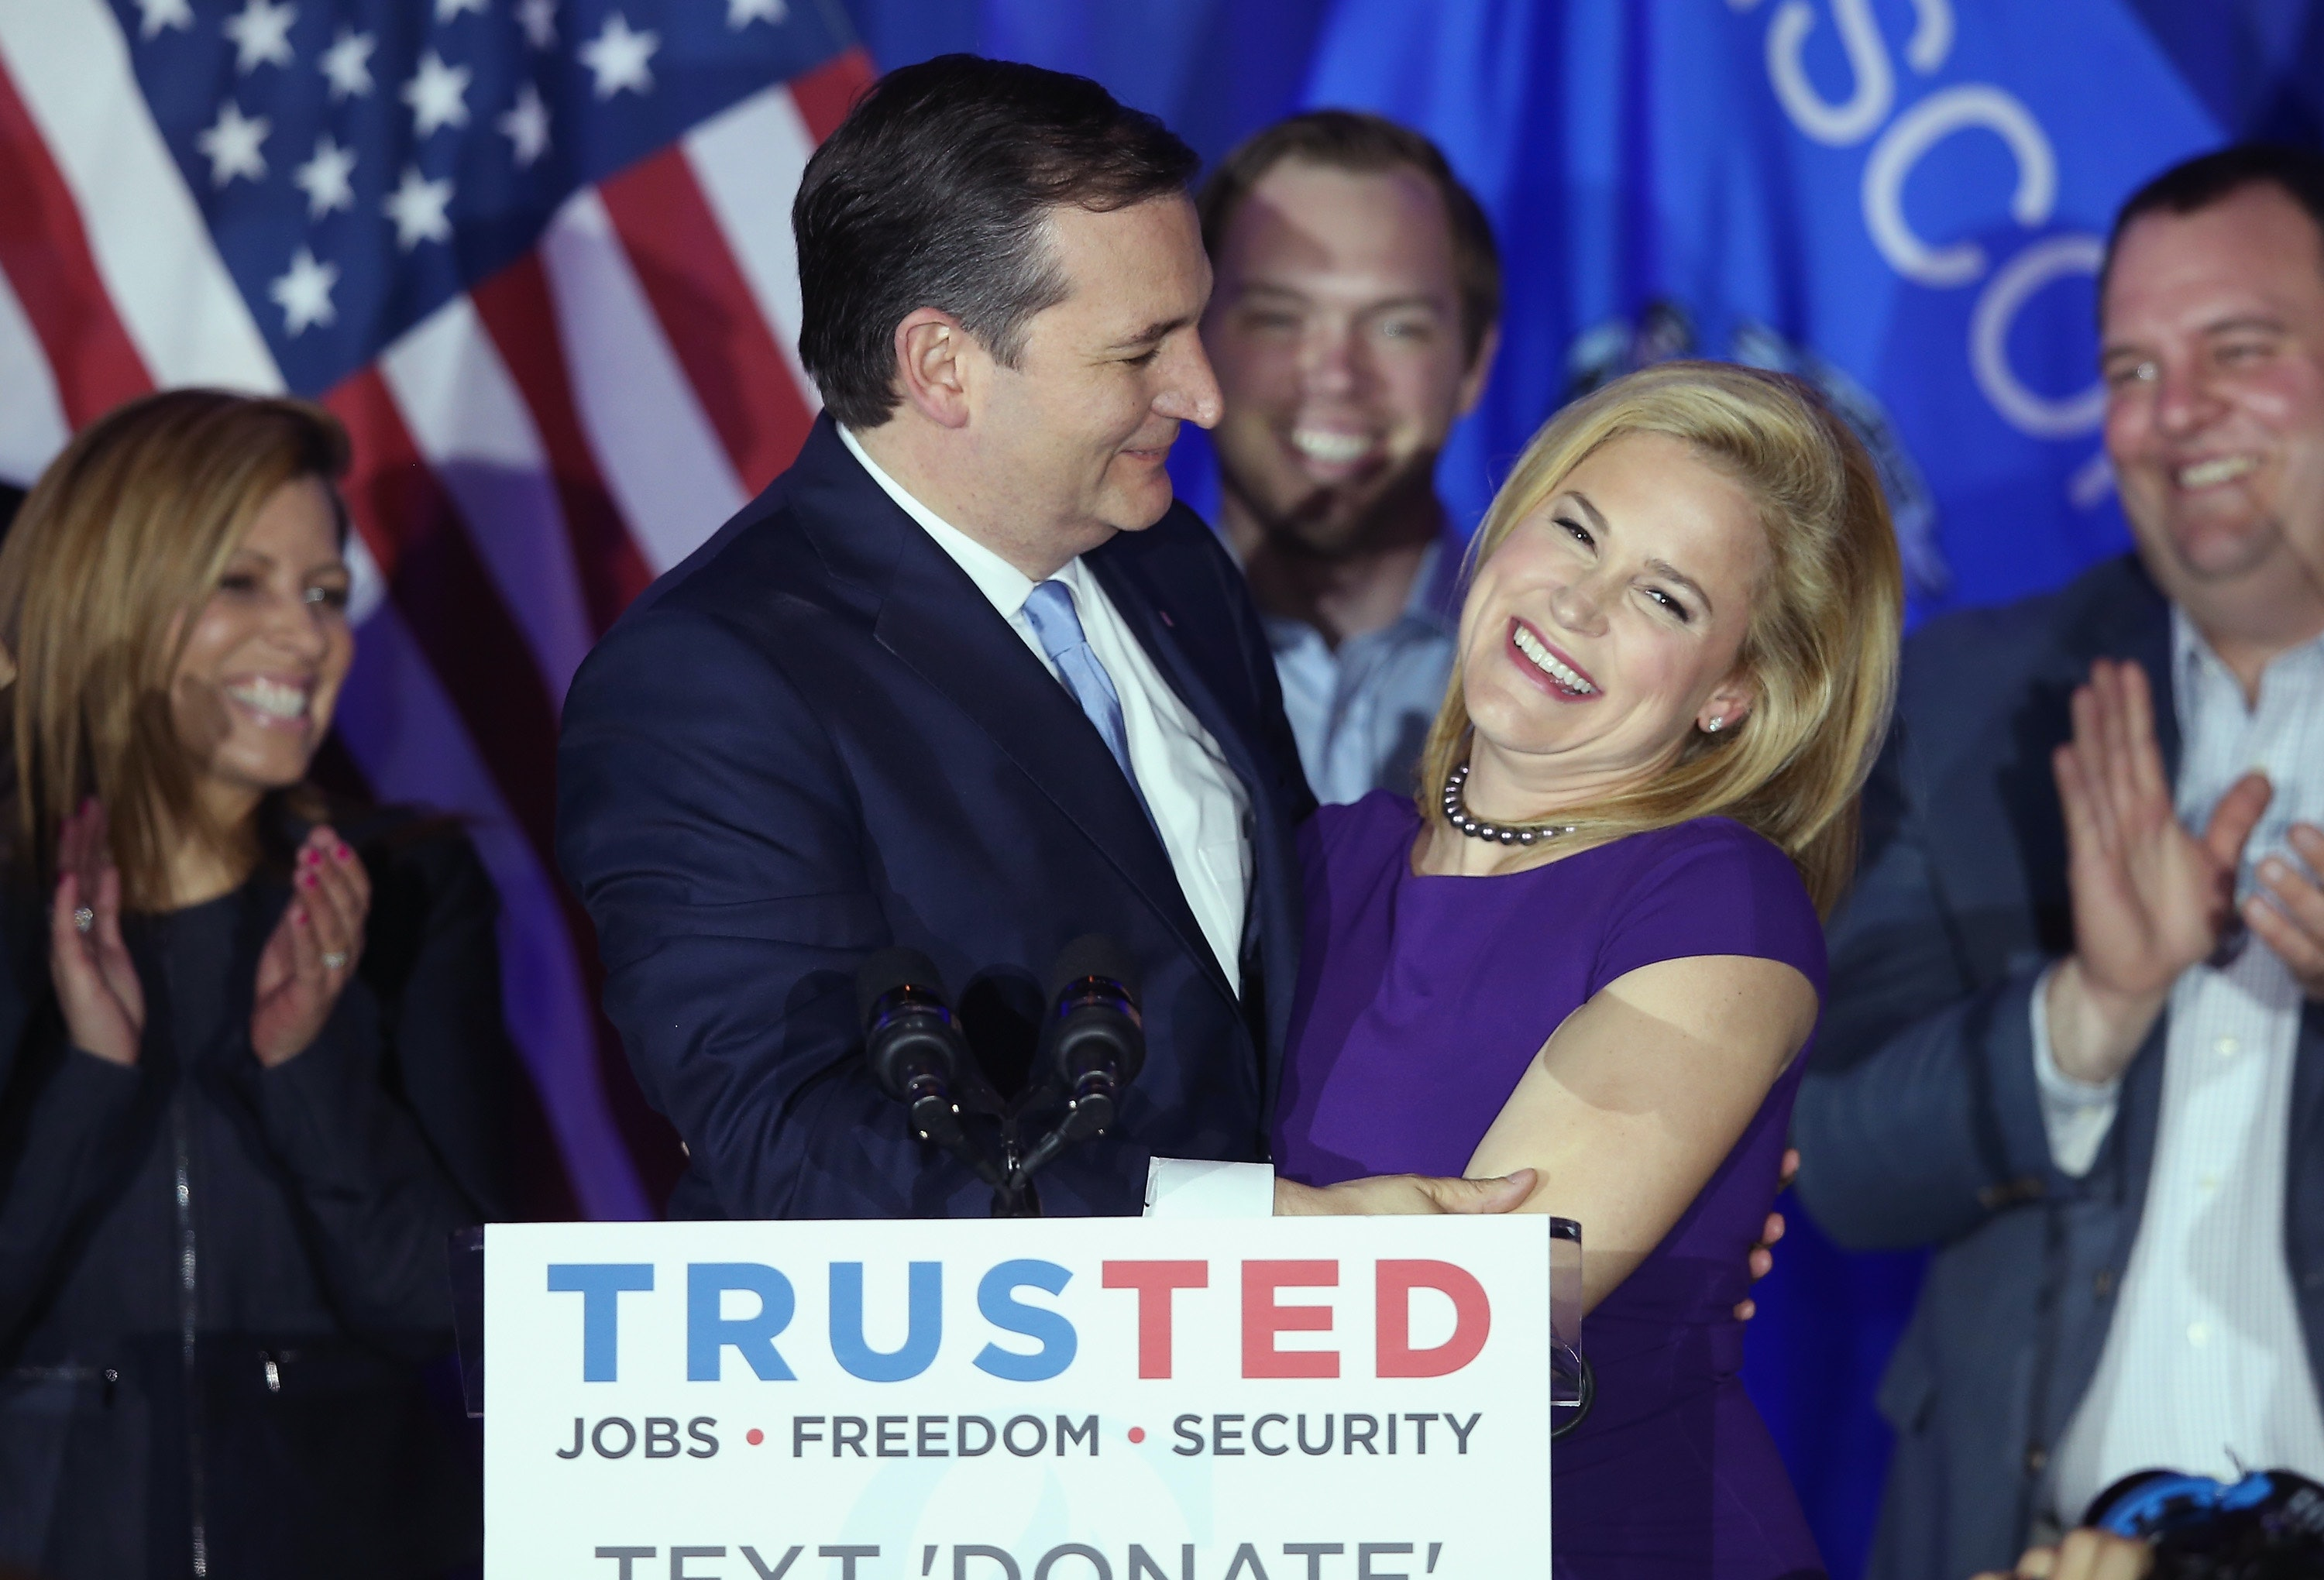 Heidi Cruz Responds To Accusation Her Husband Is The Zodiac Killer